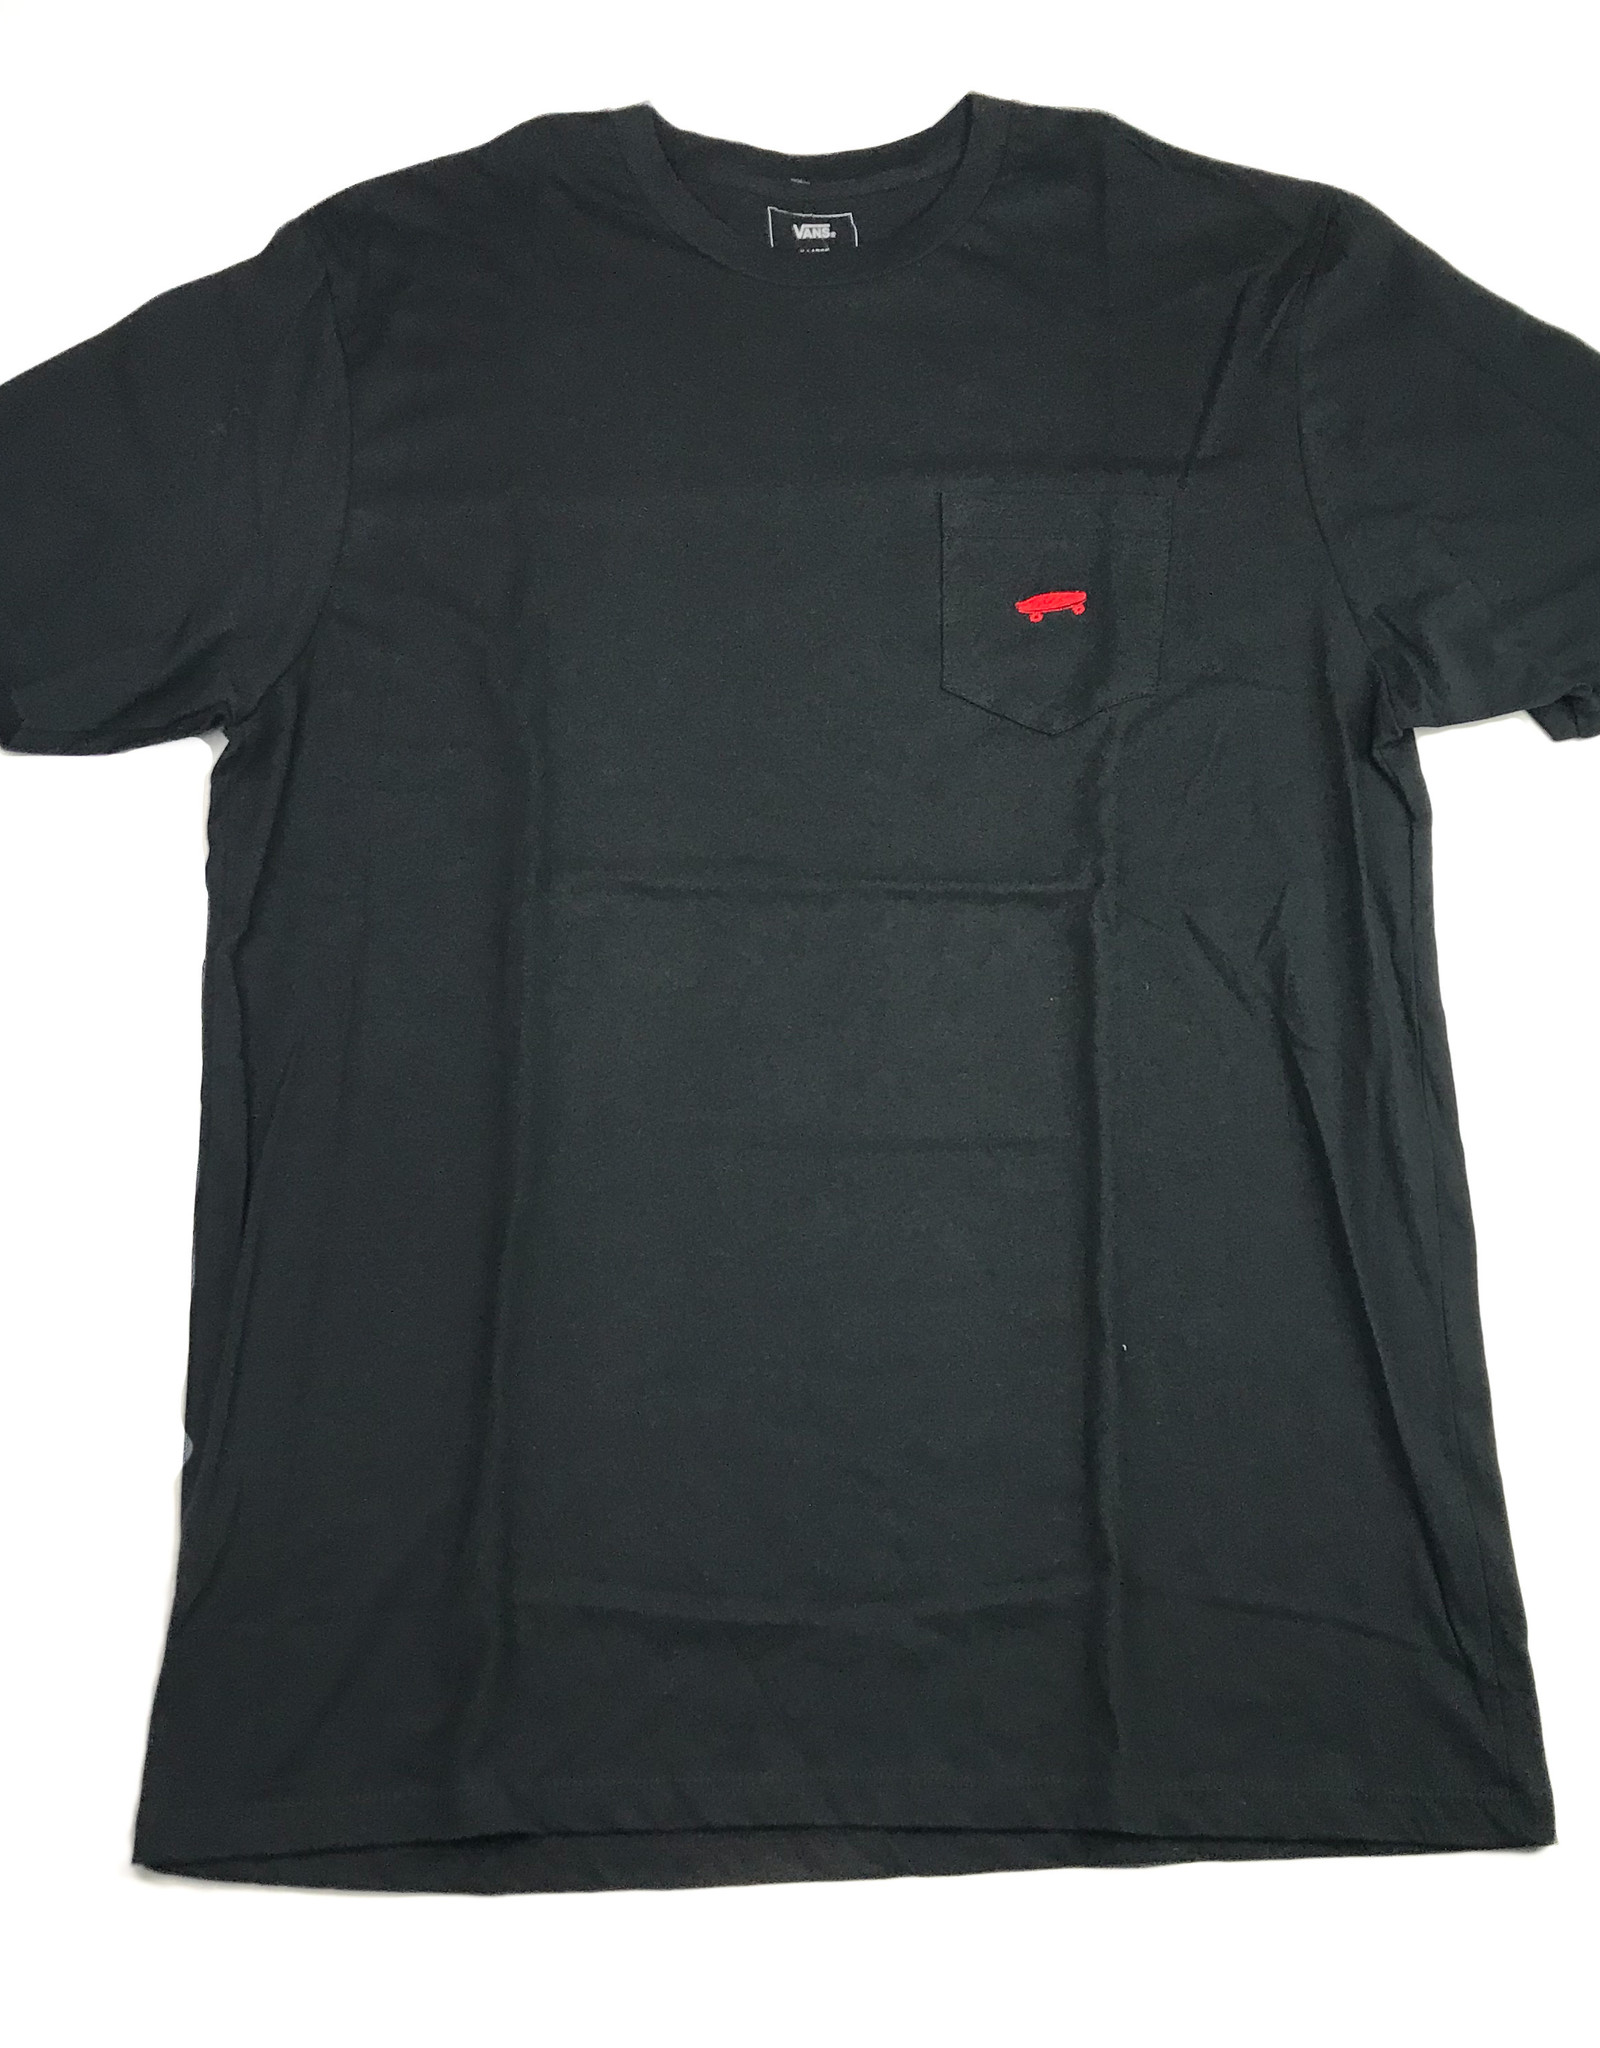 VANS VANS EVERYDAY POCKET TEE - BLACK